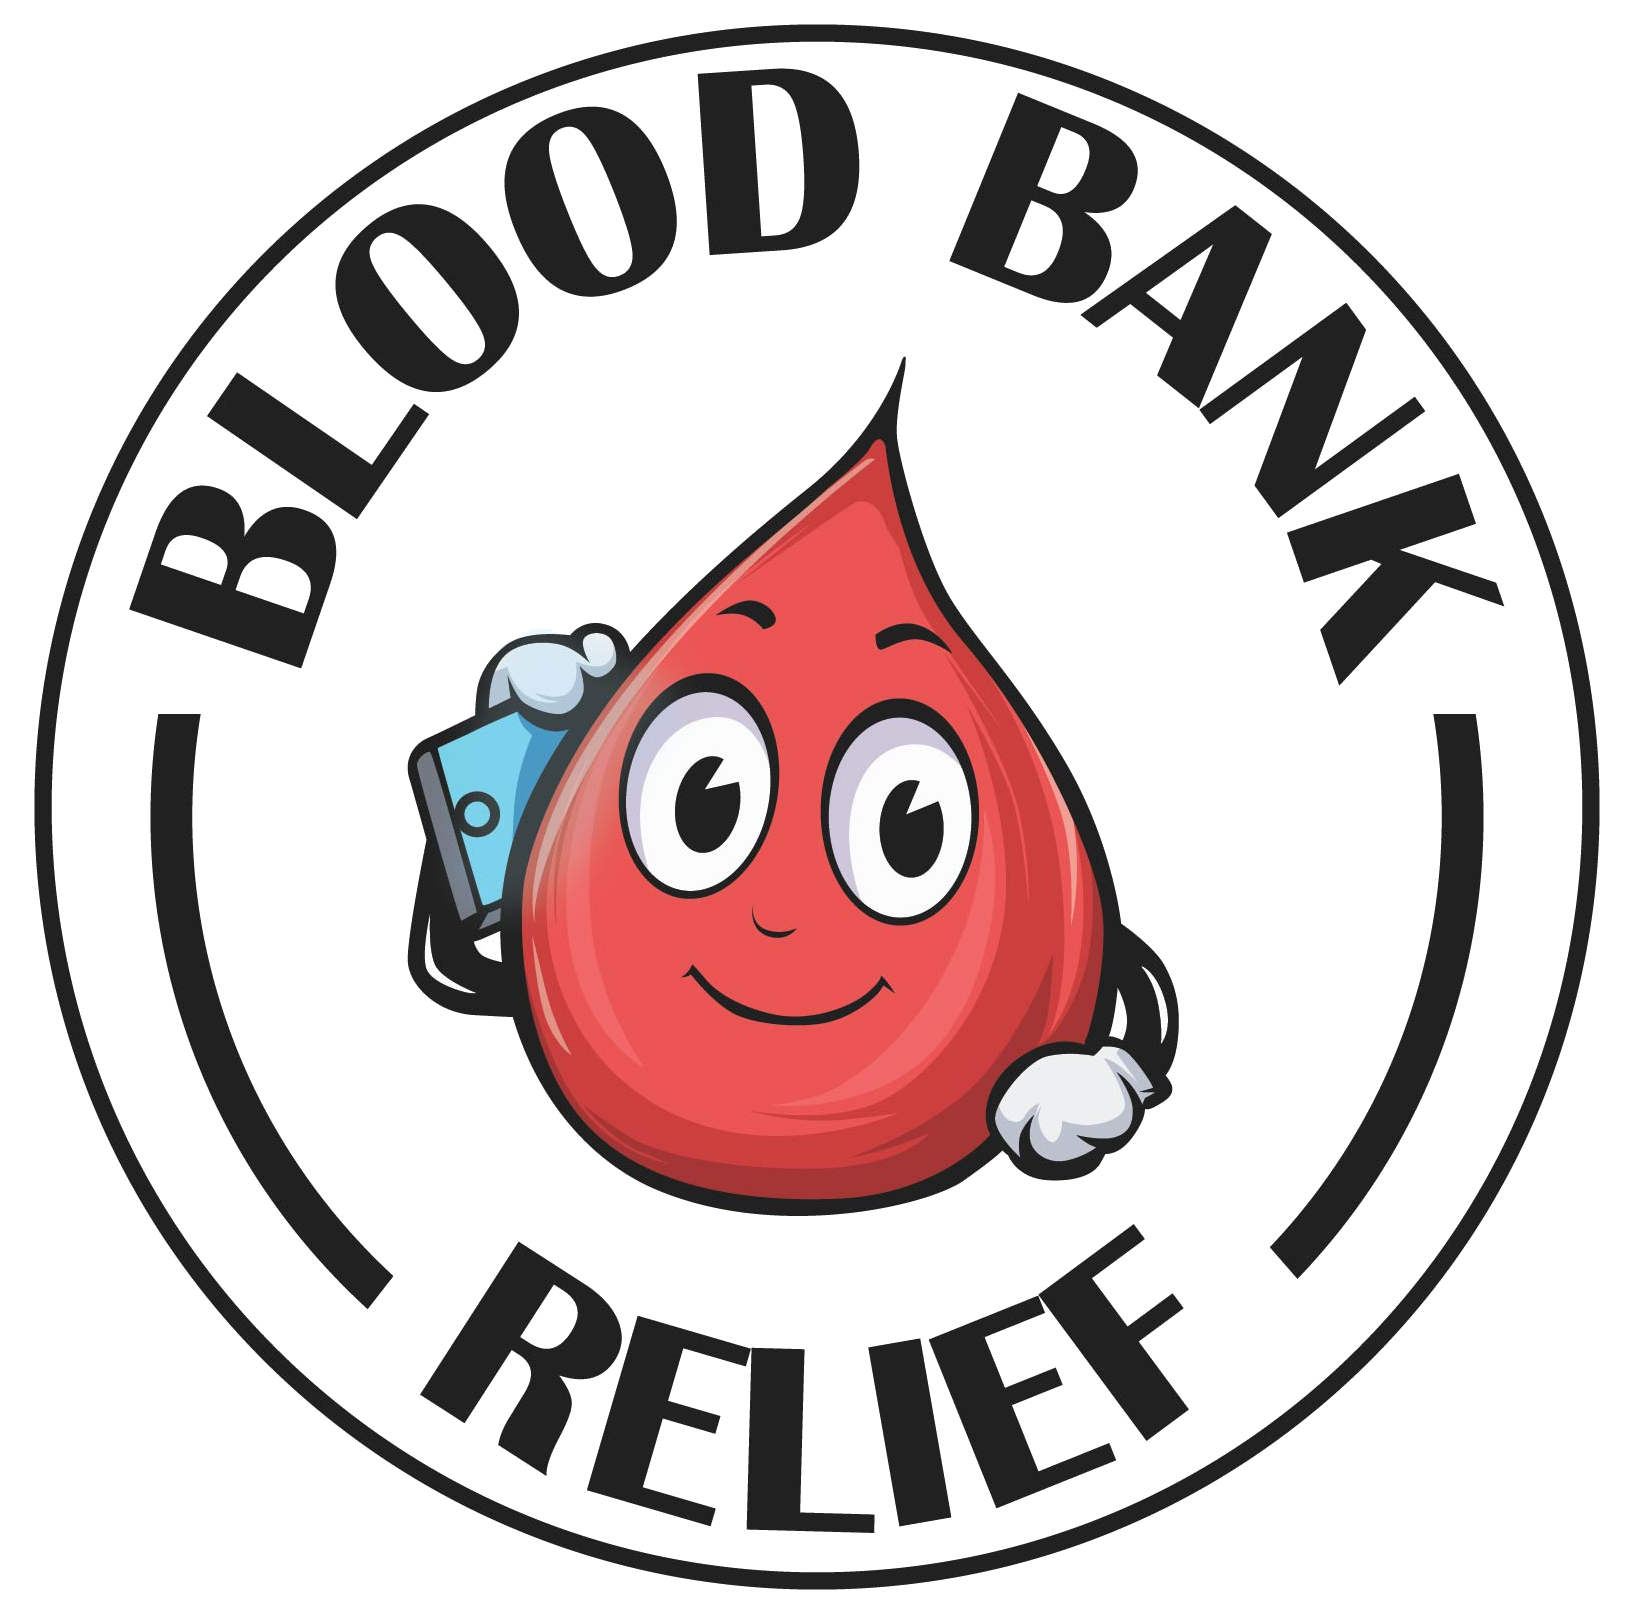 Blood Bank Relief